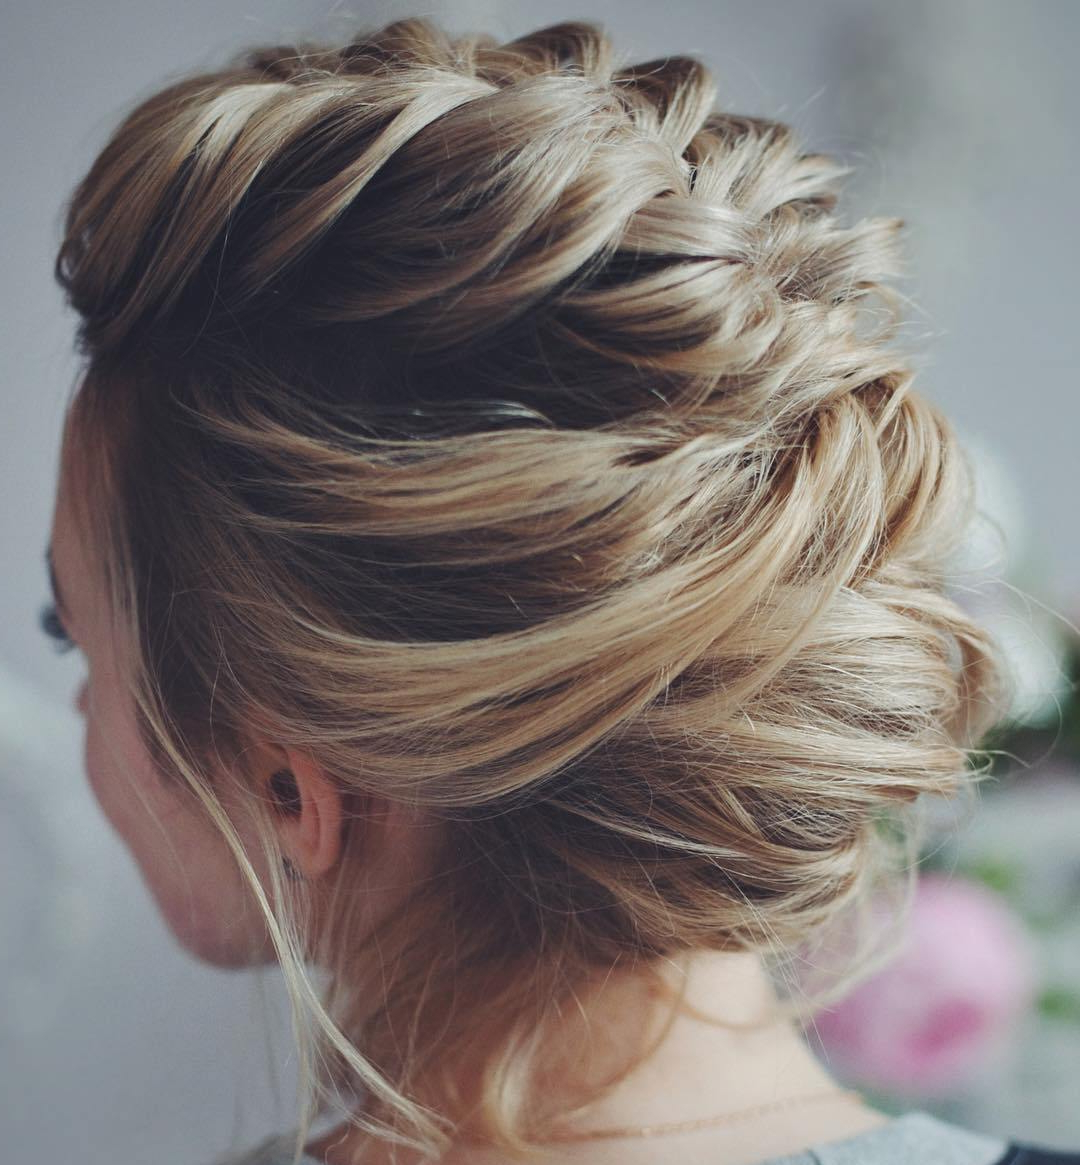 50 Hottest Prom Hairstyles For Short Hair Within Well Liked Brown Woven Updo Braid Hairstyles (View 8 of 20)